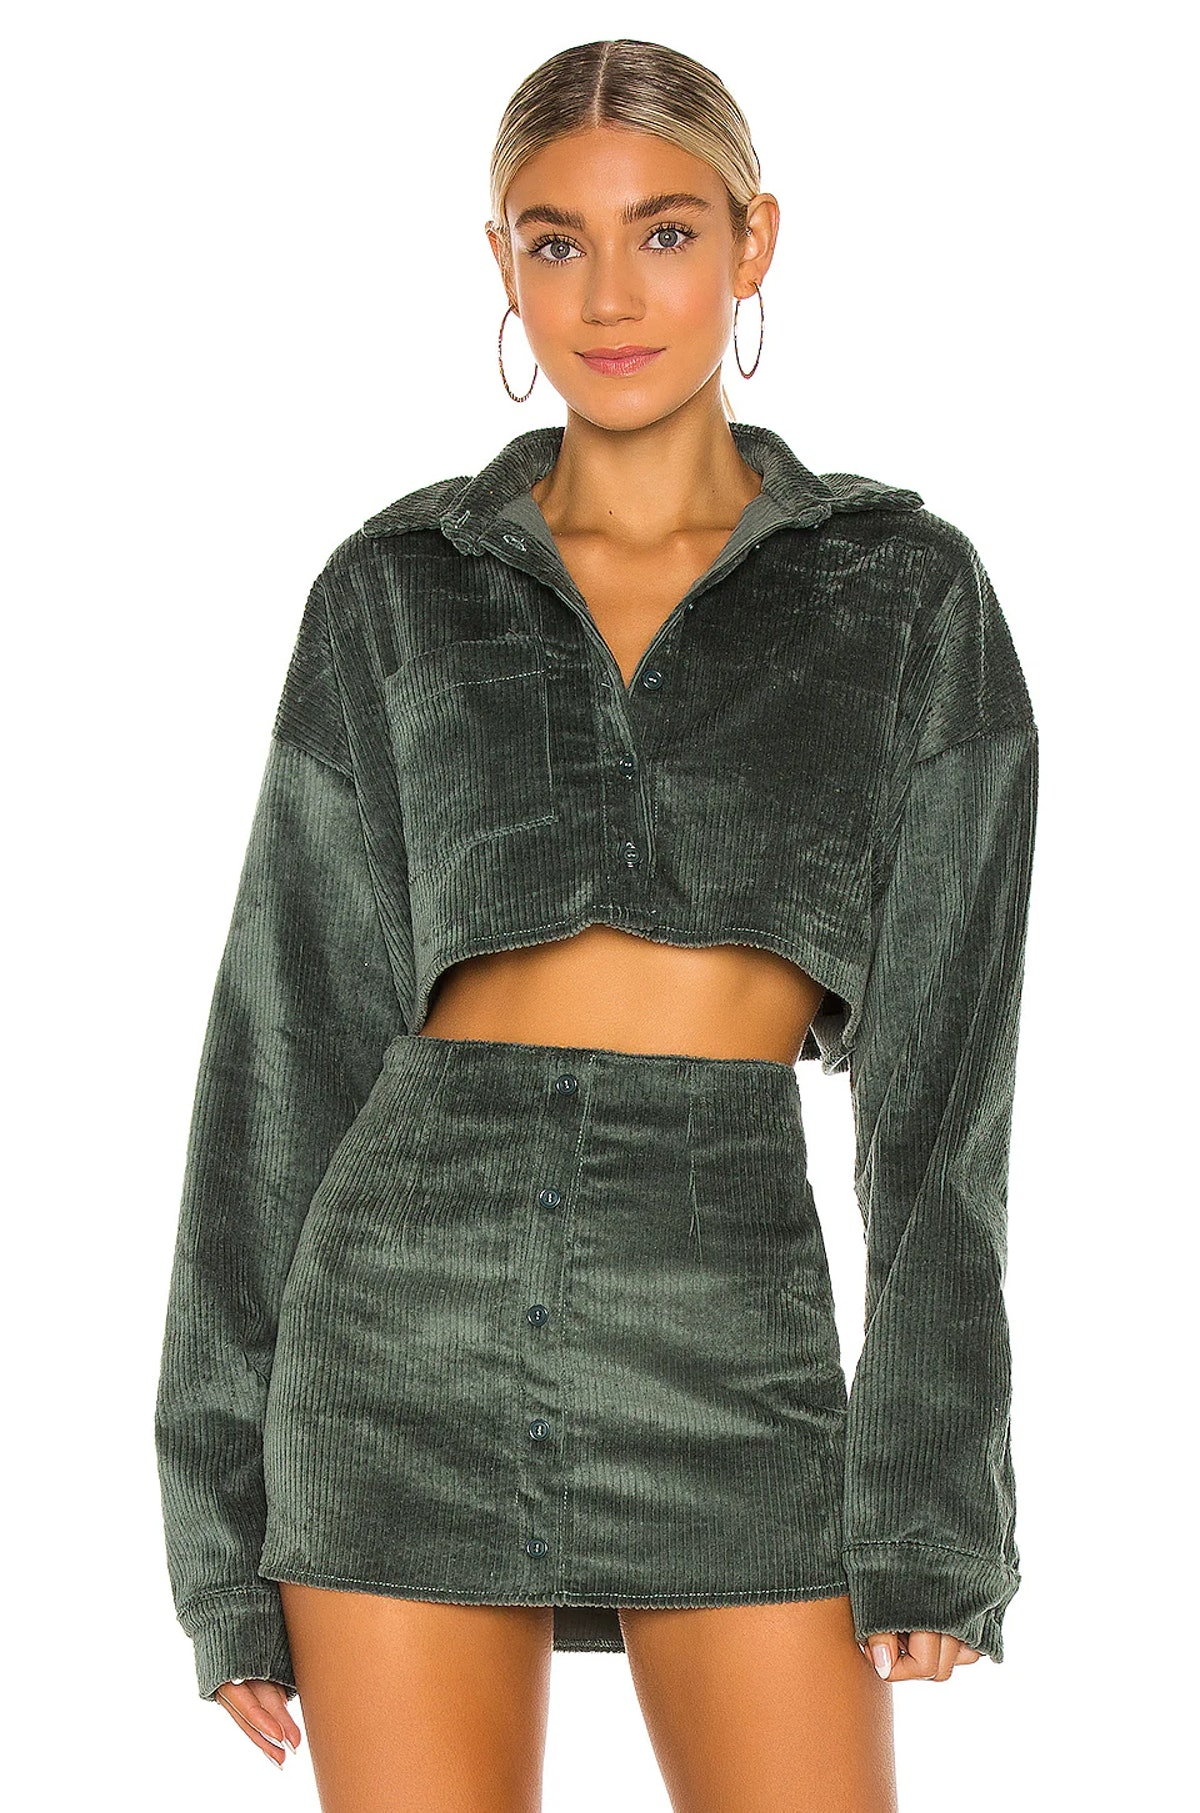 Dark green corduroy cropped shirt from Danielle Guizio, available to shop via Revolve.